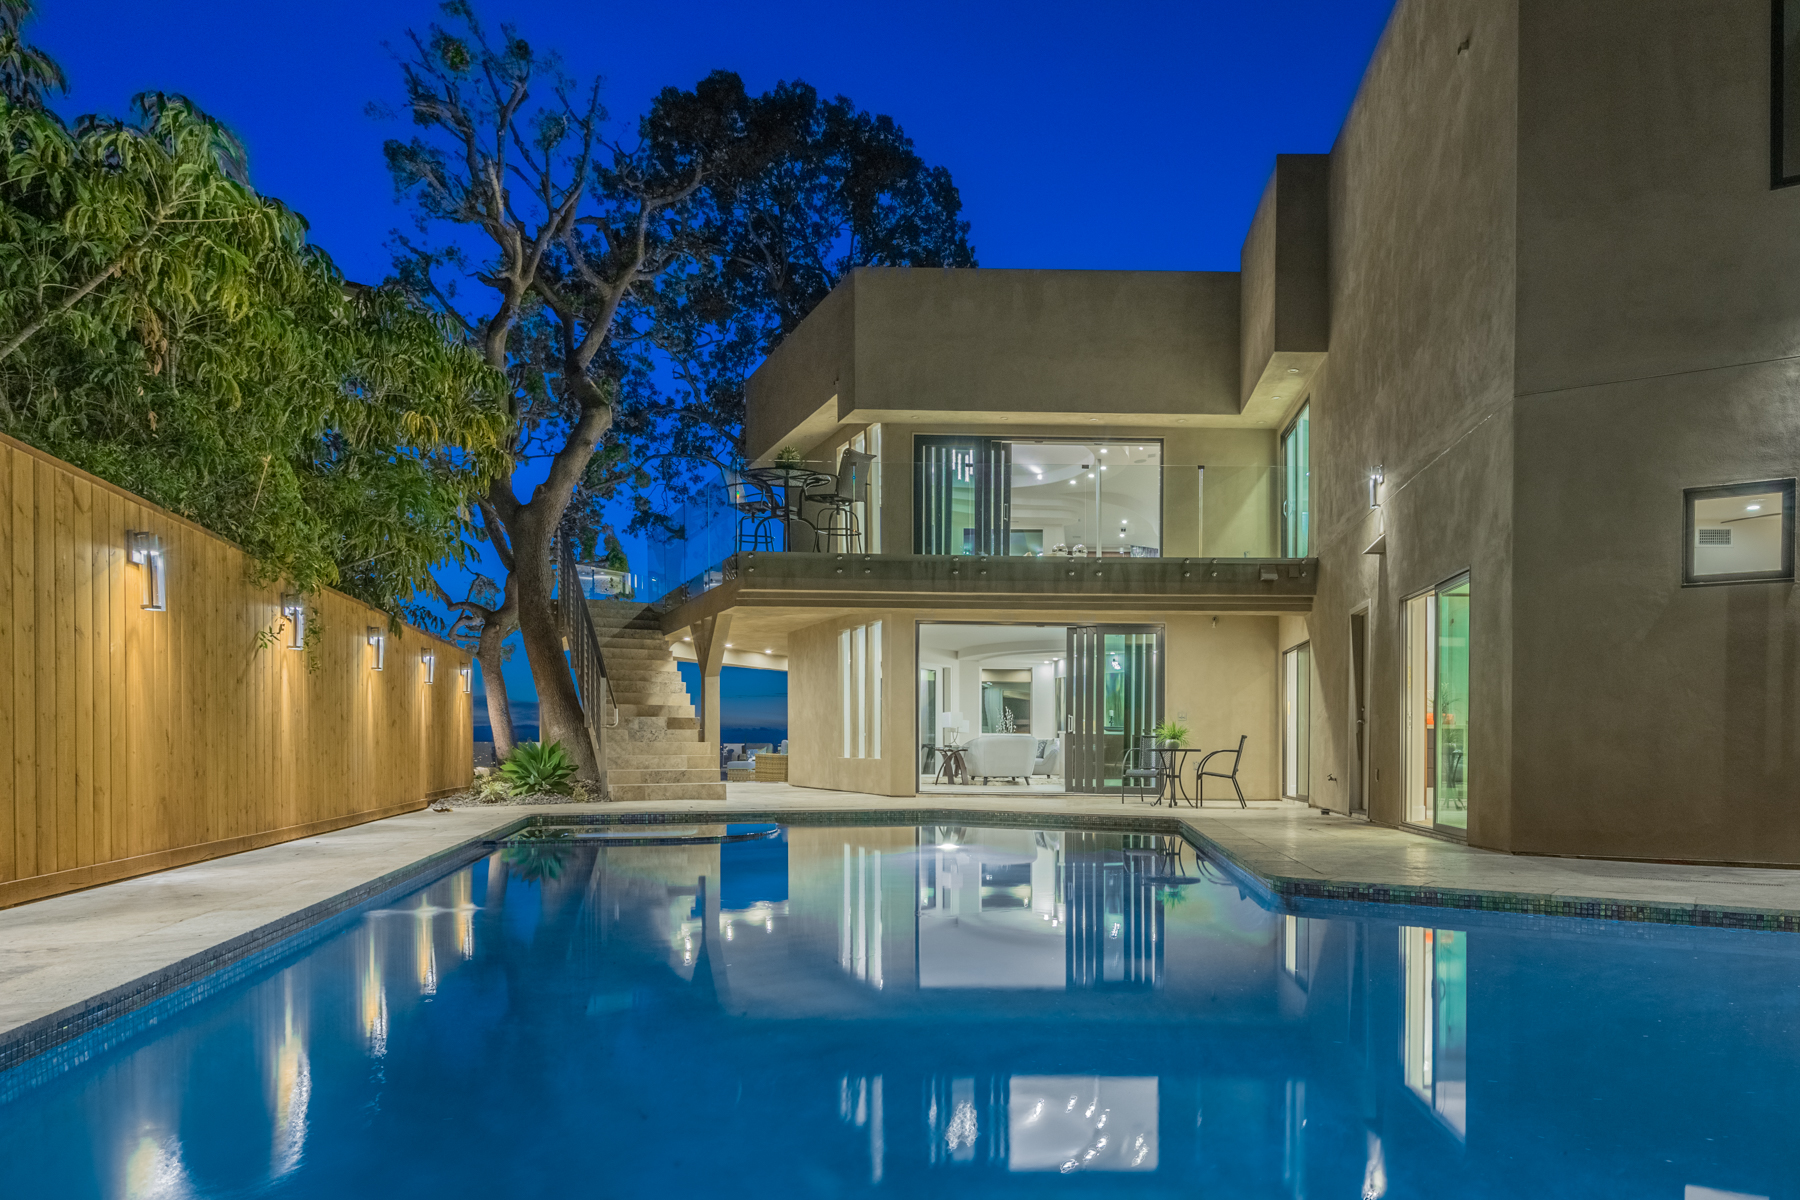 Single Family Home for Sale at 2461 Presidio Drive Mission Hills, San Diego, California, 92103 United States